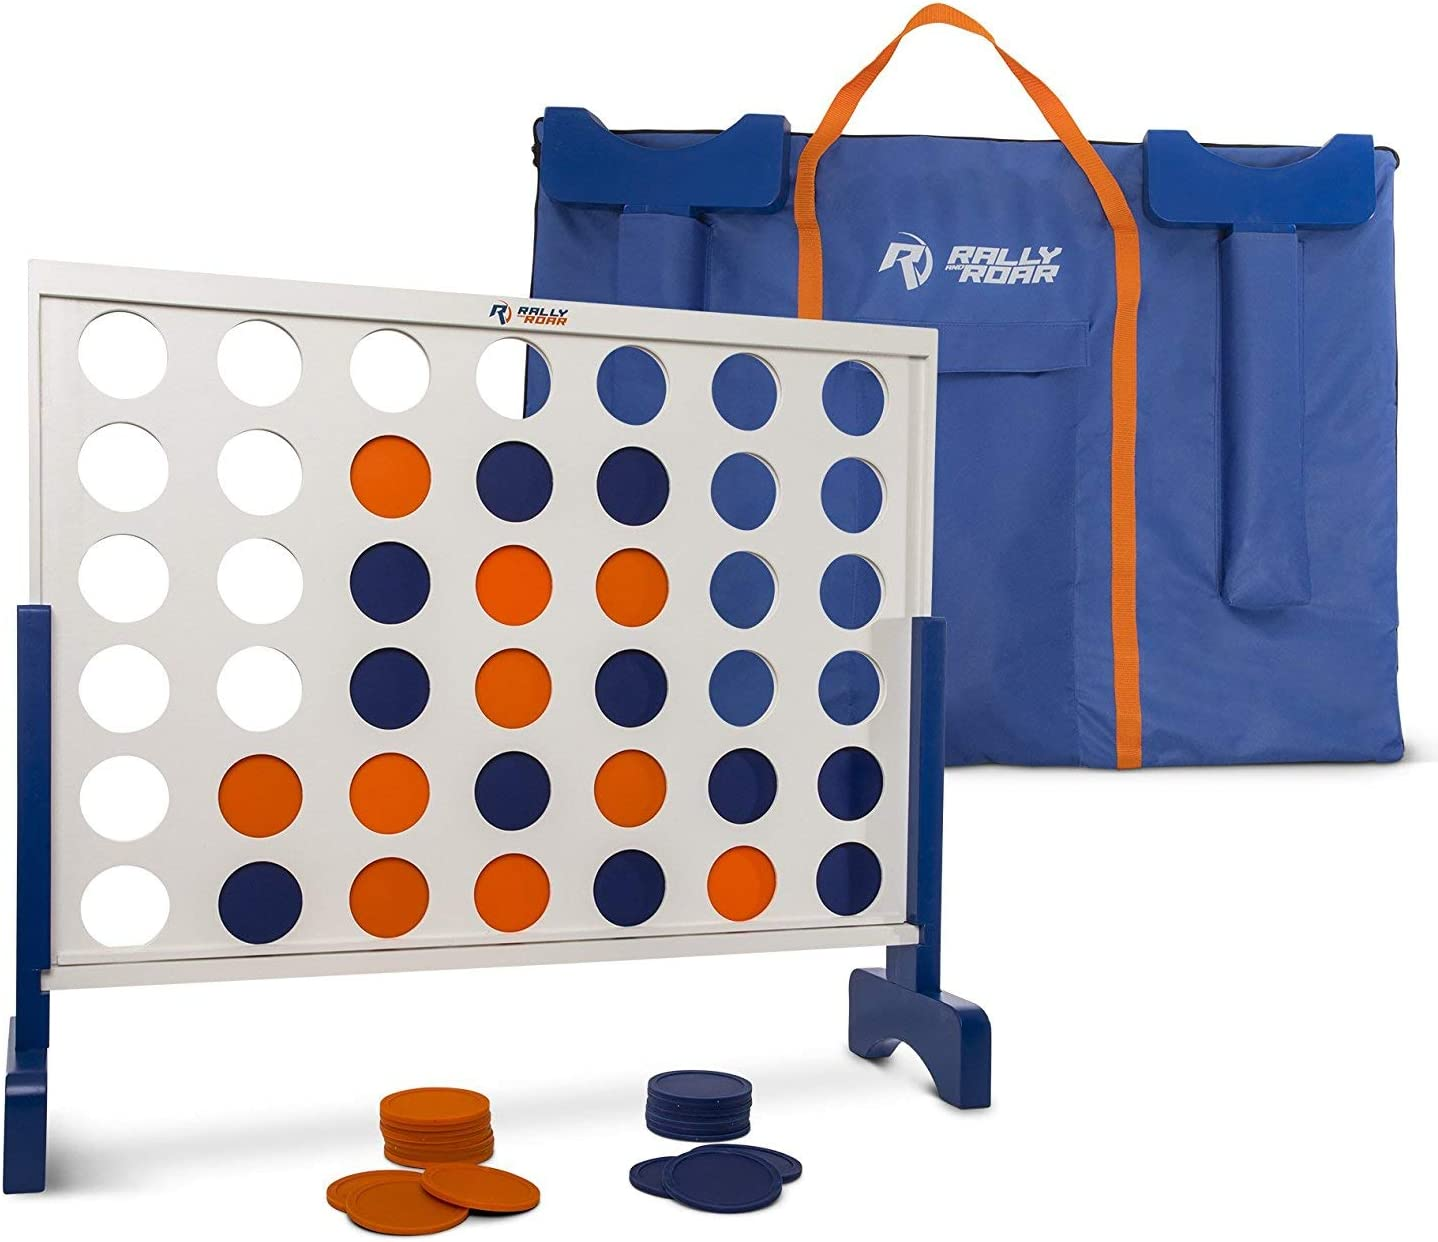 Giant 4 in A Row 3/' CHOOSE 2/' 4 to Score with Bag by Rally and Roar Premium Wooden Four Connect Game Oversized Family Outdoor Party Games for Backyard OR 4/' White OR Wood Grain Lawn Parties